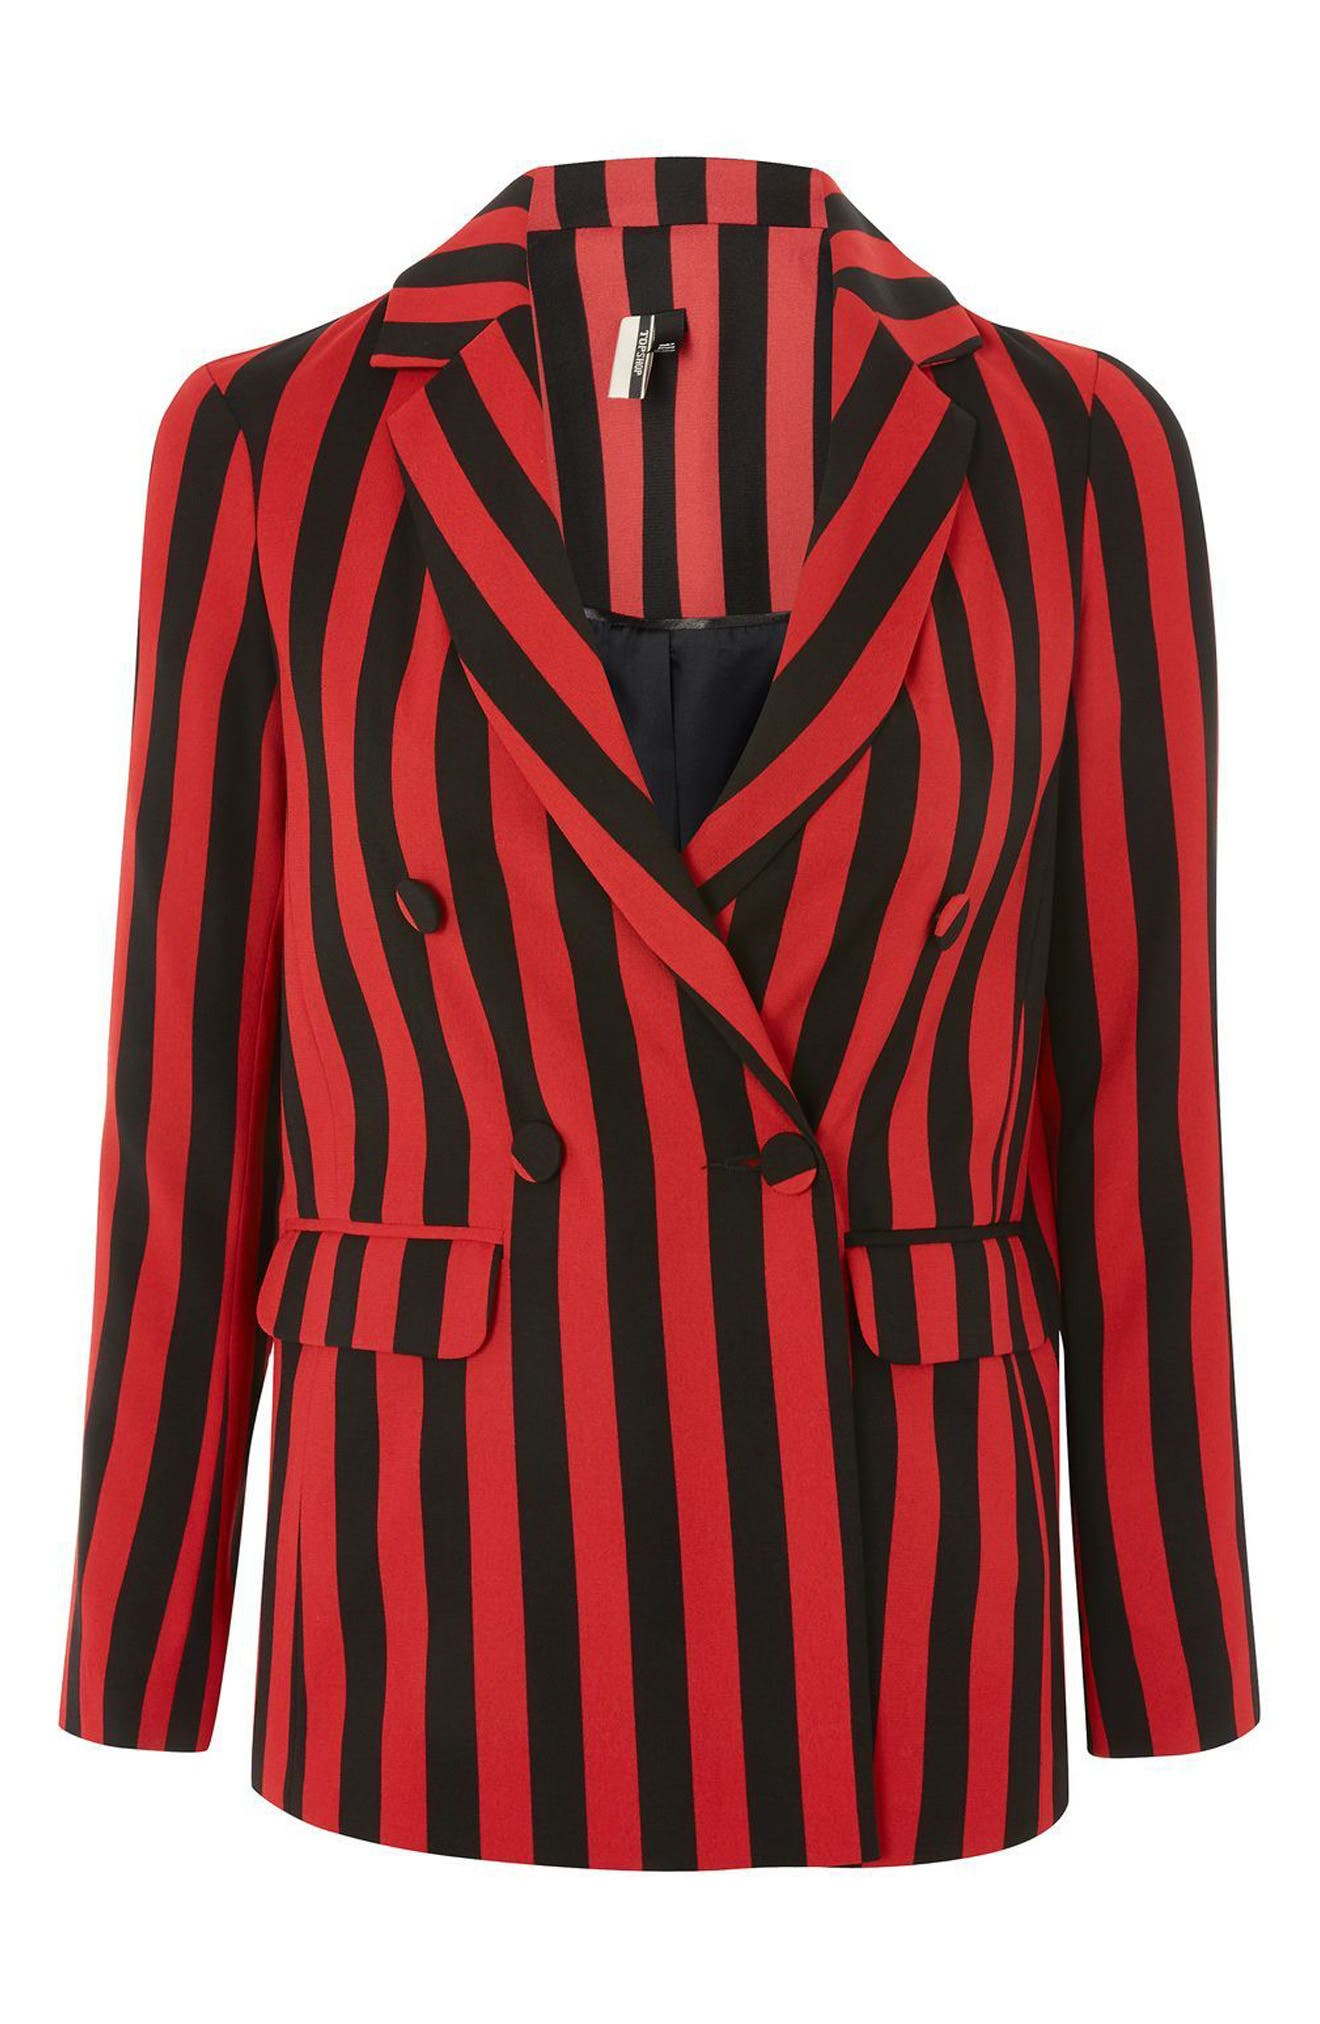 Humbug Stripe Double Breasted Blazer,                             Alternate thumbnail 4, color,                             601